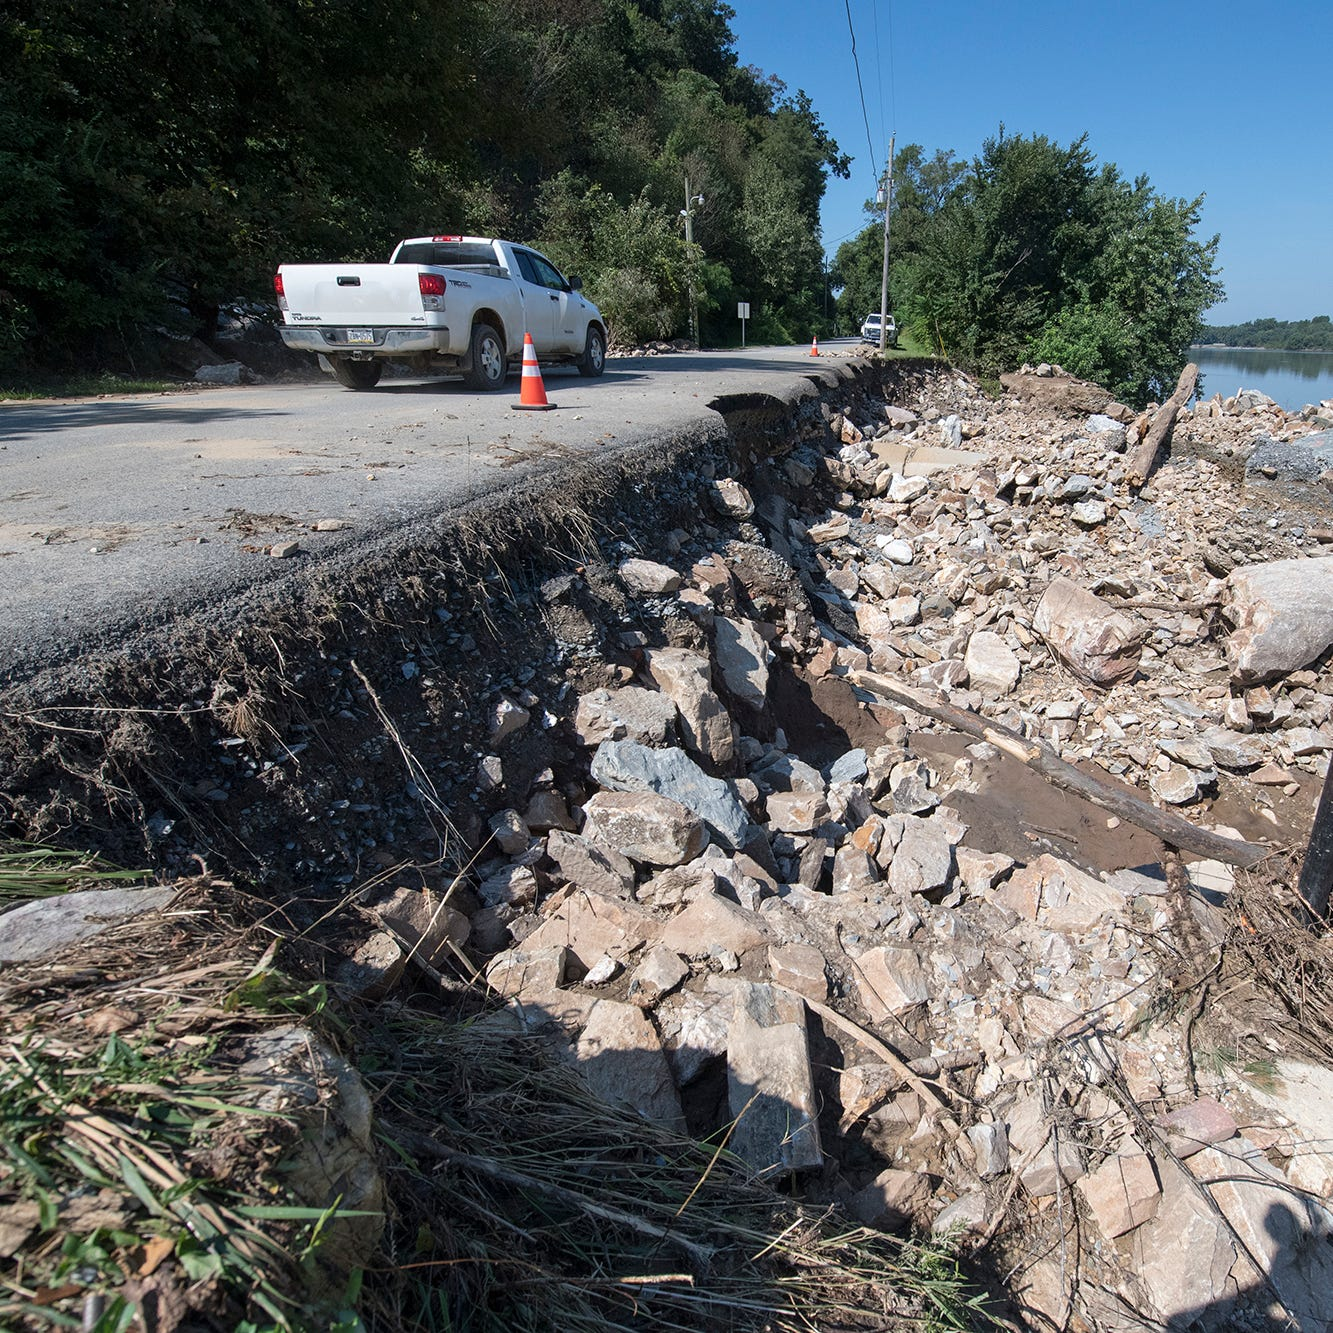 Why was flooding so bad near the Susquehanna? There's a geological explanation